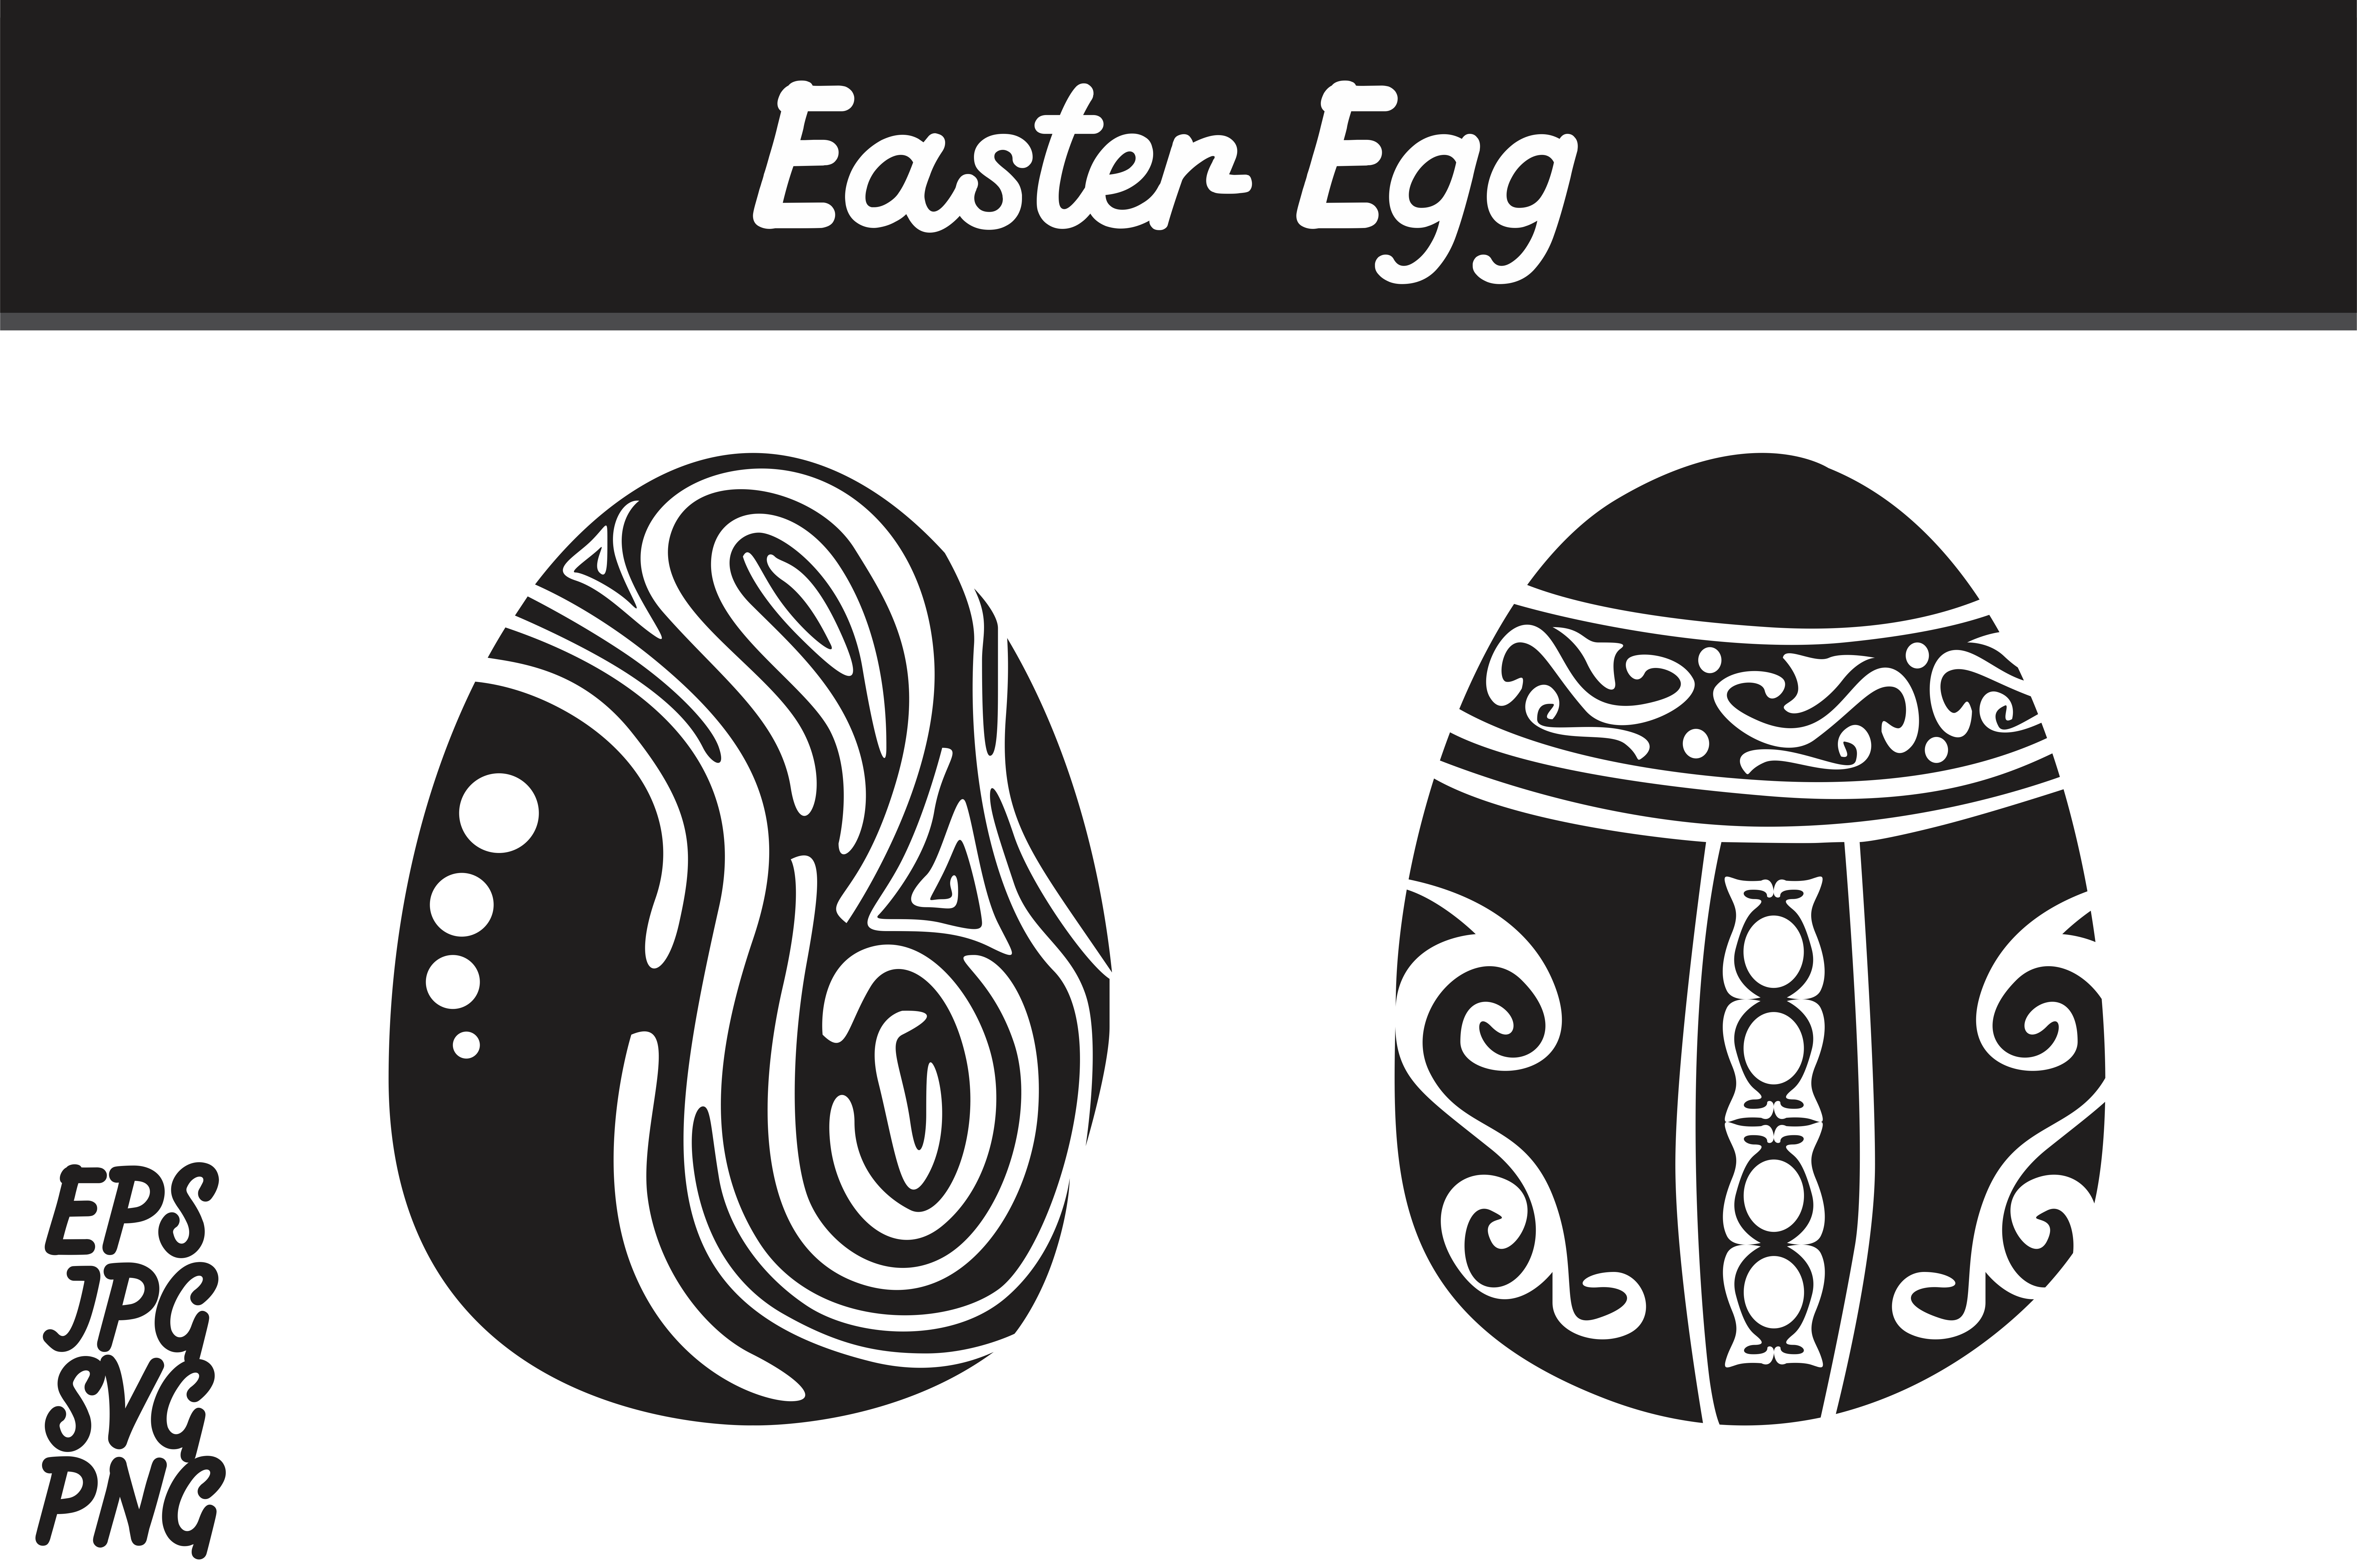 Download Free Easter Egg Set Svg Vector Image Bundle Graphic By Arief Sapta for Cricut Explore, Silhouette and other cutting machines.